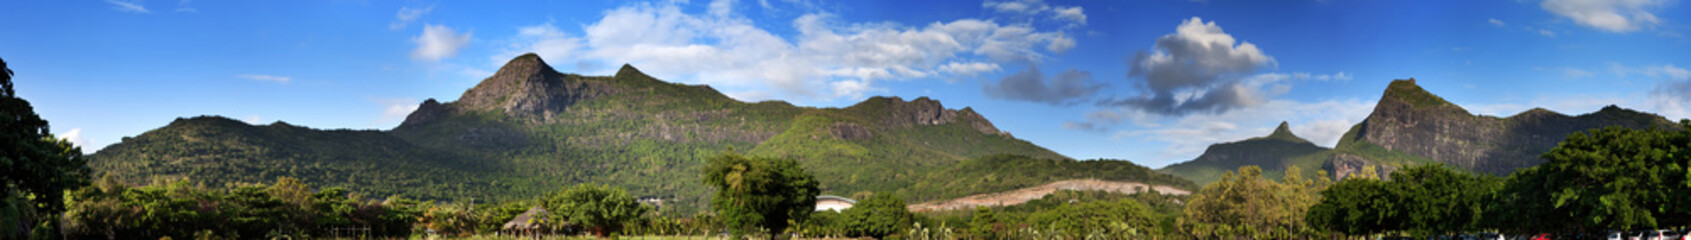 Nature of Mauritius. Wood and mountains, panorama